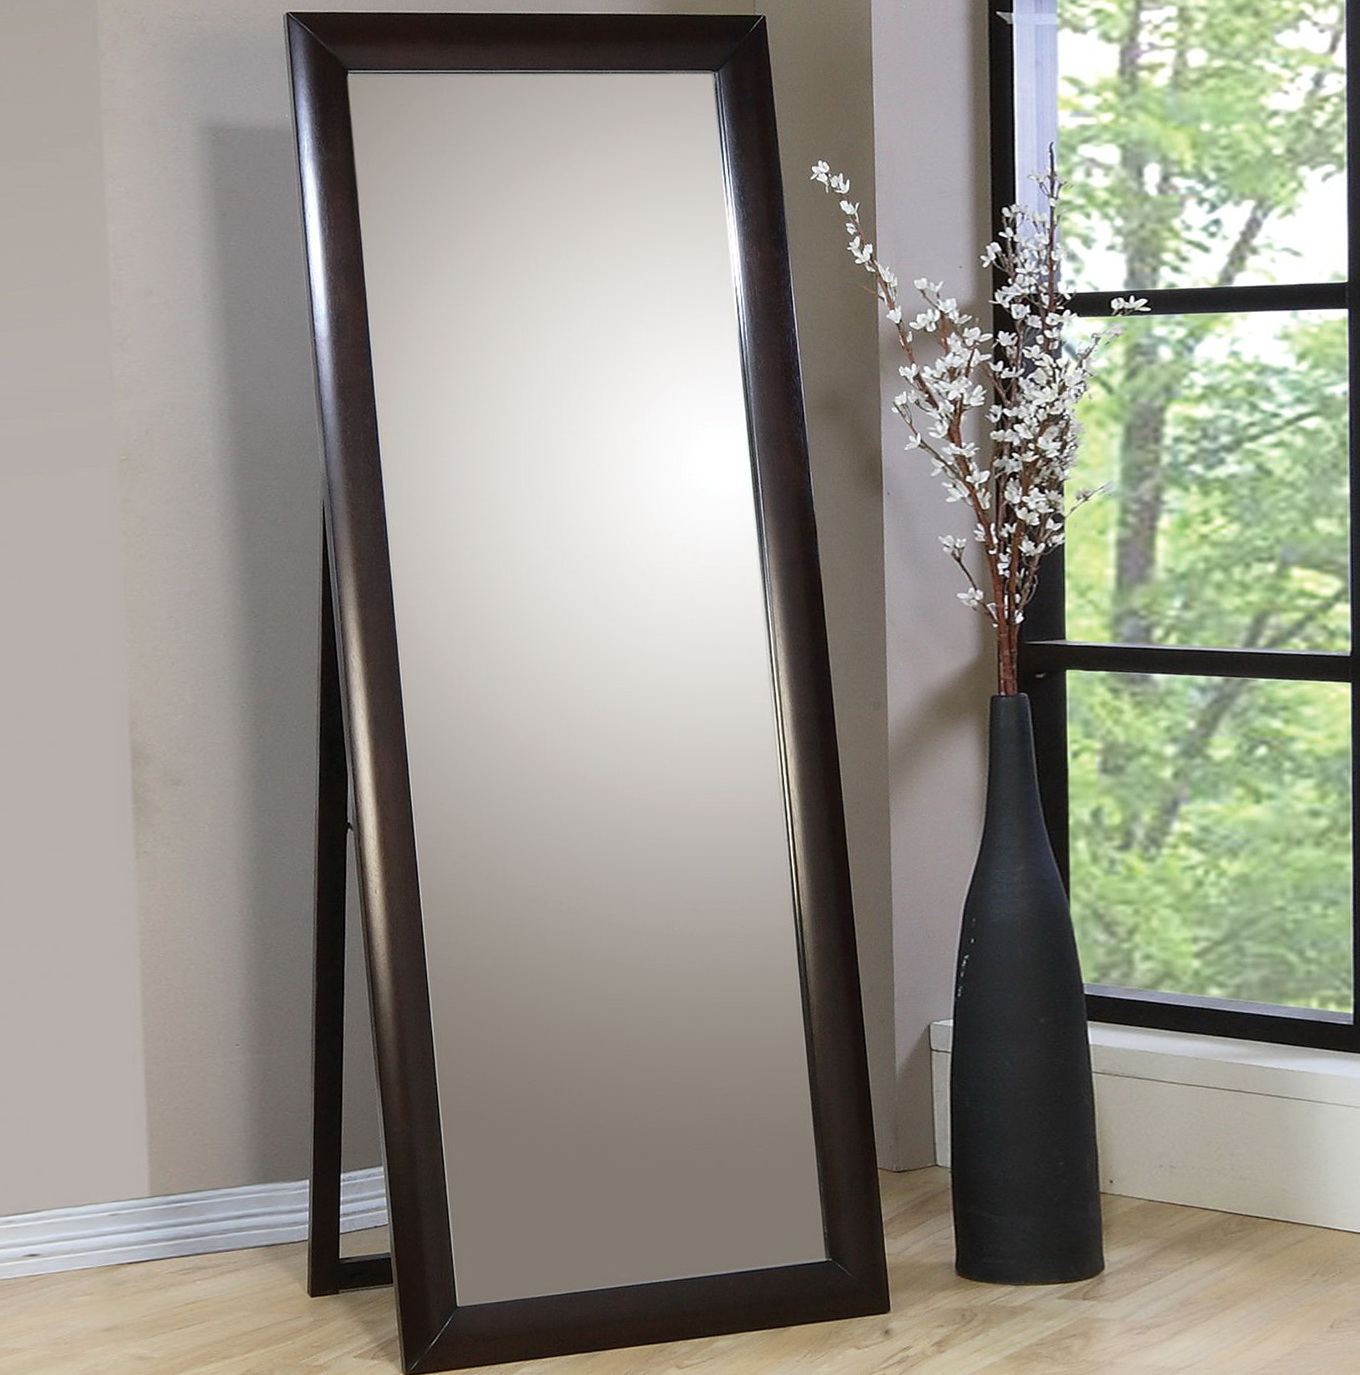 Floor Mirrors For Sale Ikea Home Design Ideas